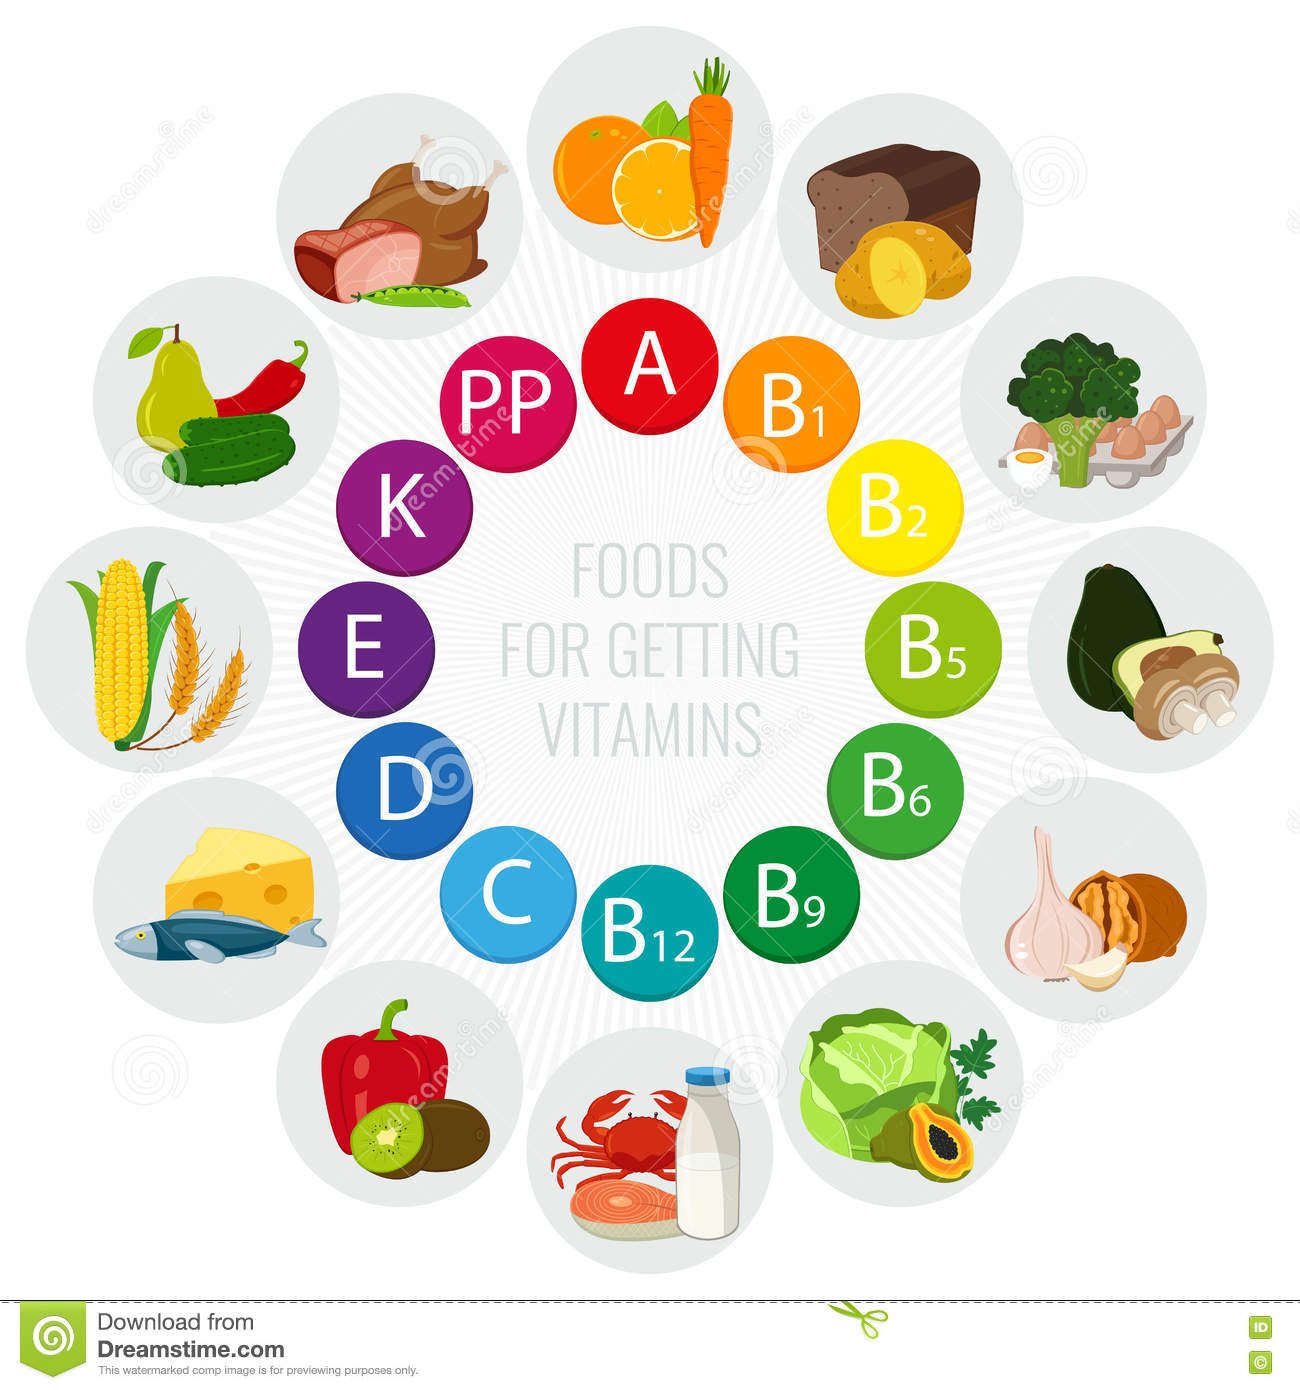 Vitamin Wheel Cartoon Vector Cartoondealer Com 34519819